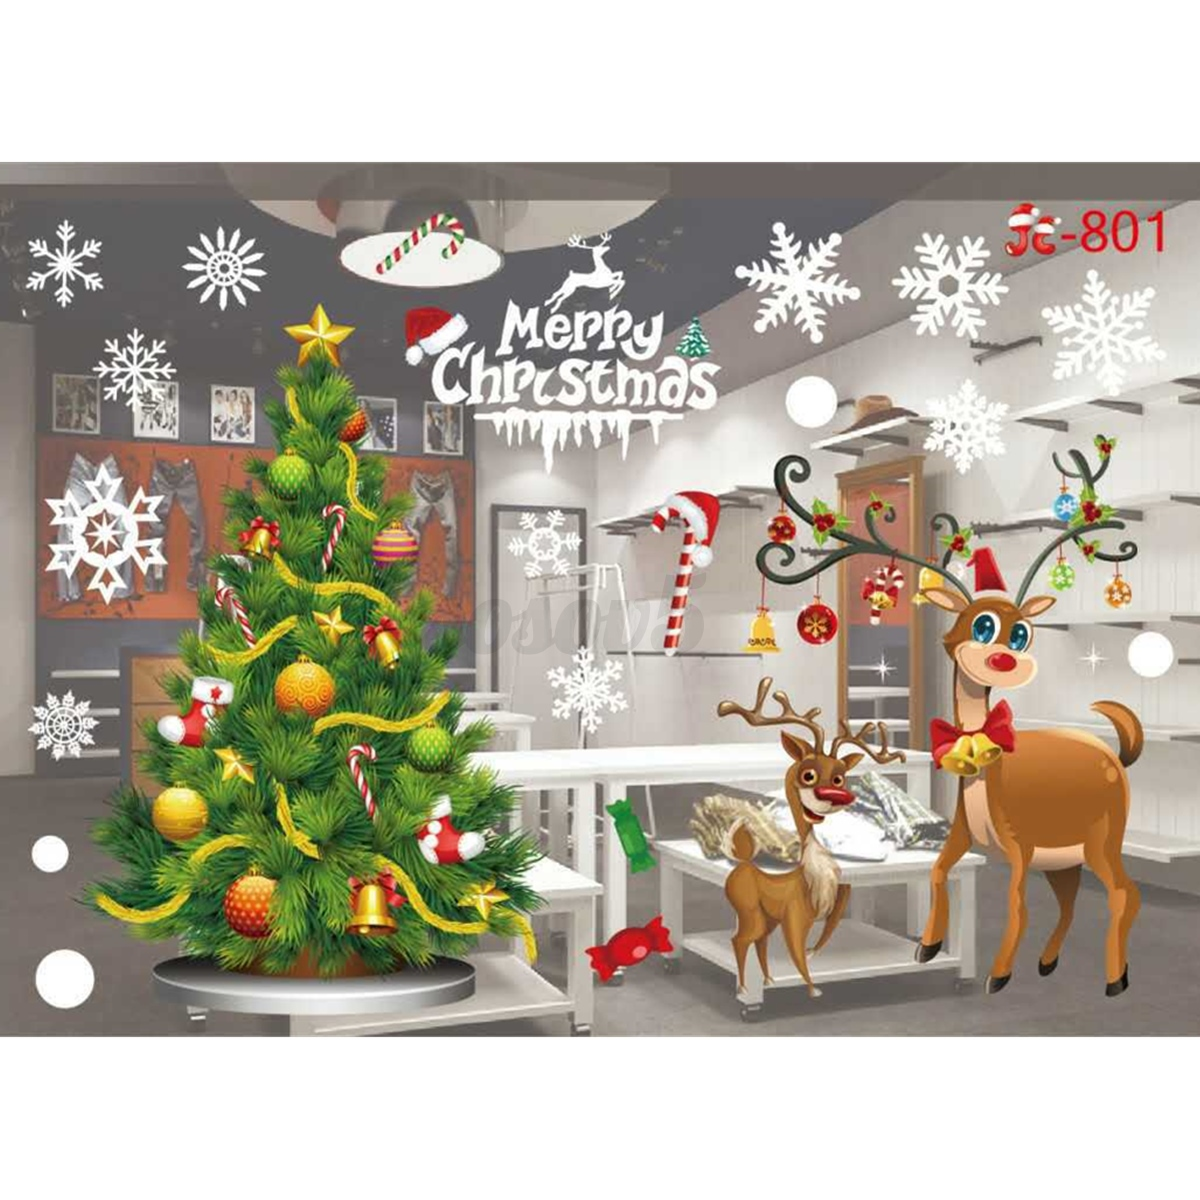 Christmas Decorations For Home Windows: Home Window Glass Wall Sticker Decals Hotel Holiday Party